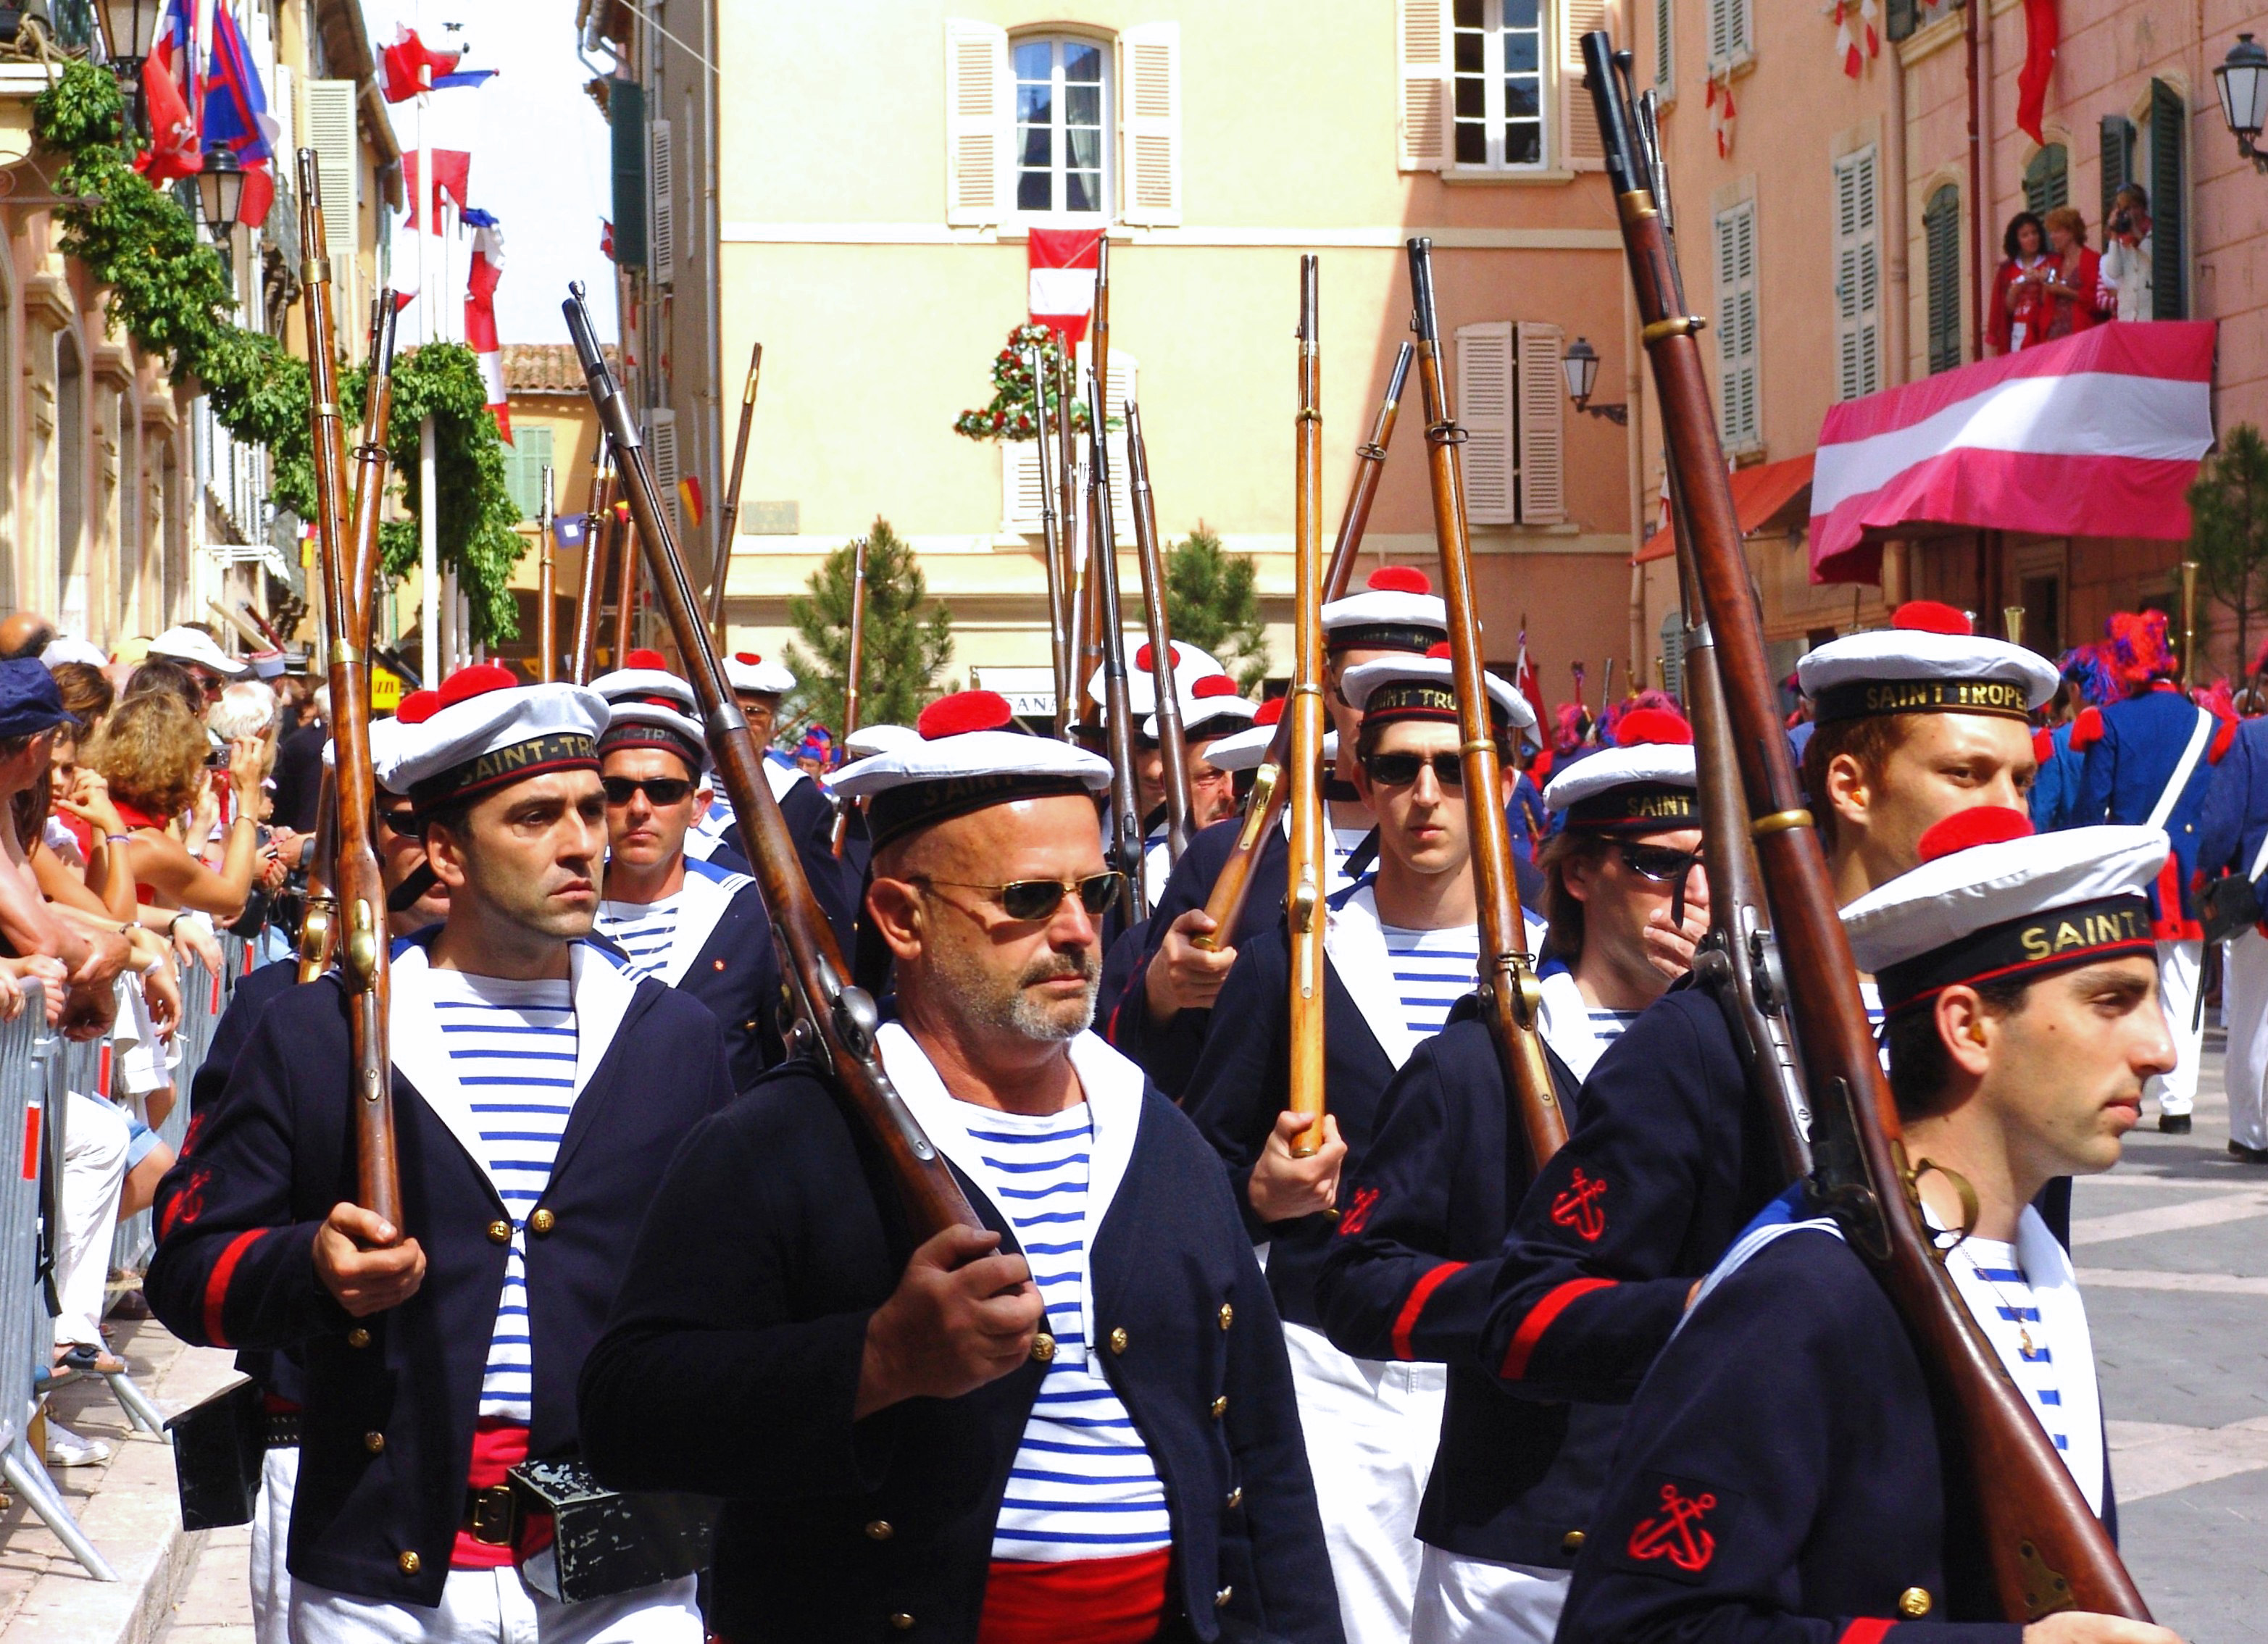 Bravades tradition Saint-Tropez